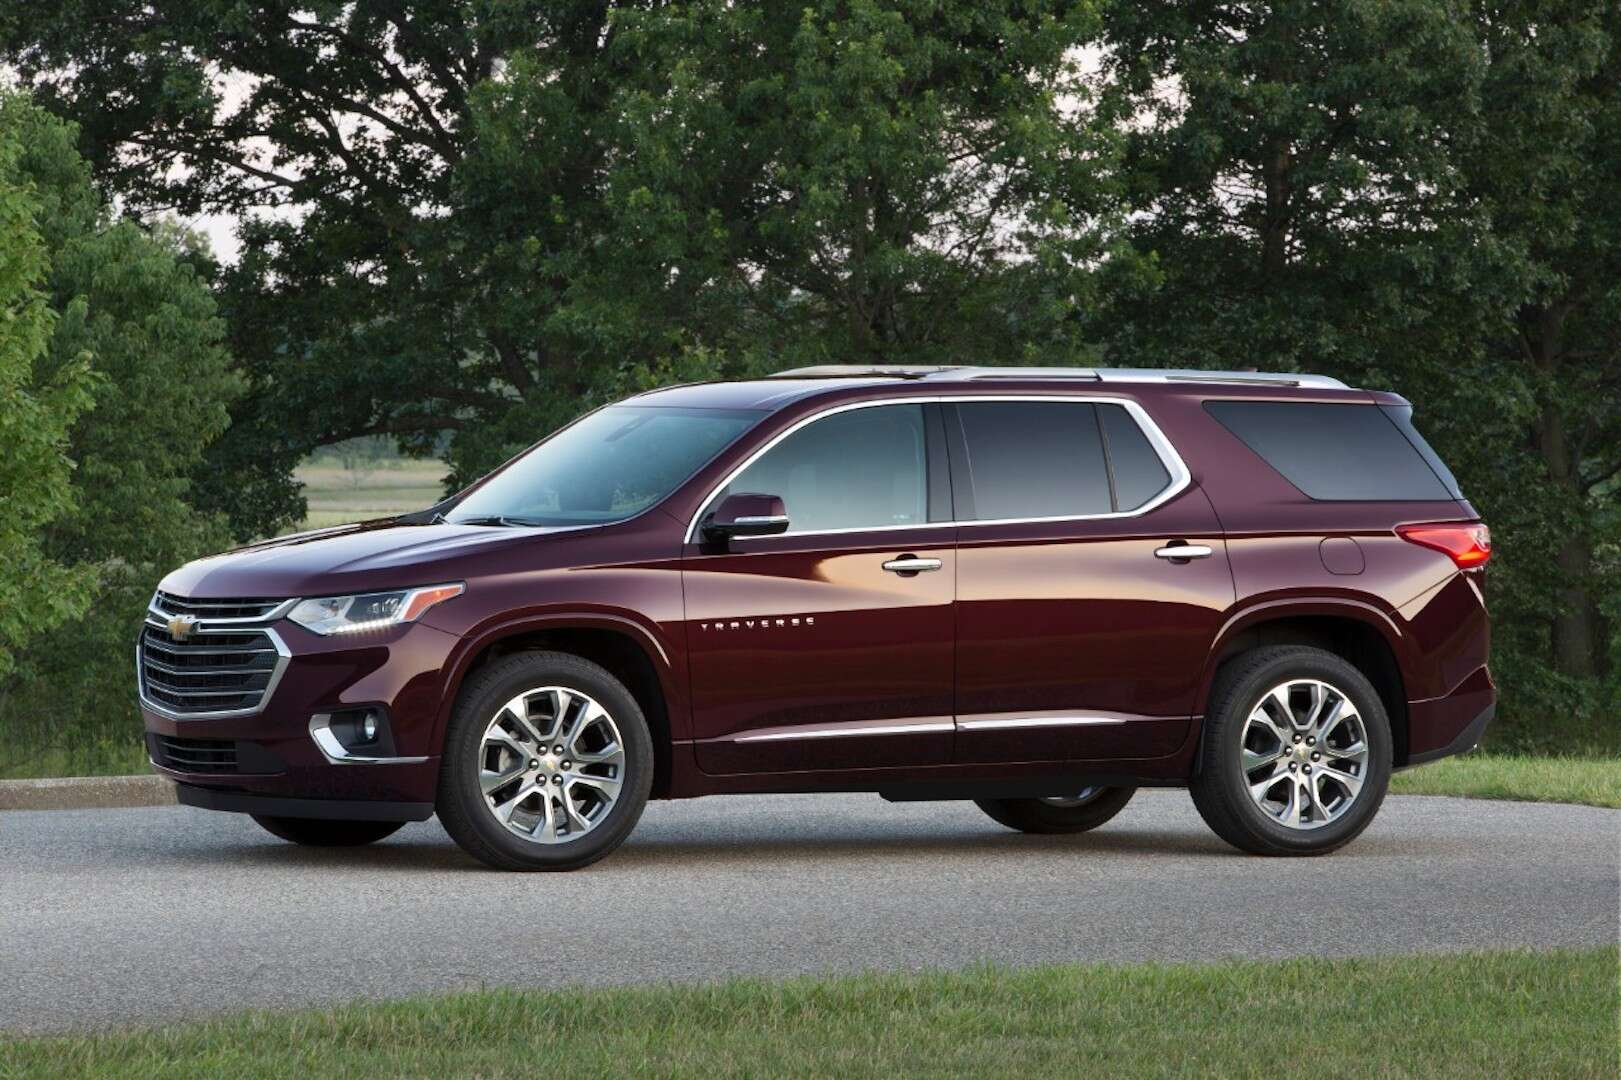 All Chevy big chevy suv : 2018 Chevrolet Traverse Review: A Handsome Crossover SUV That ...